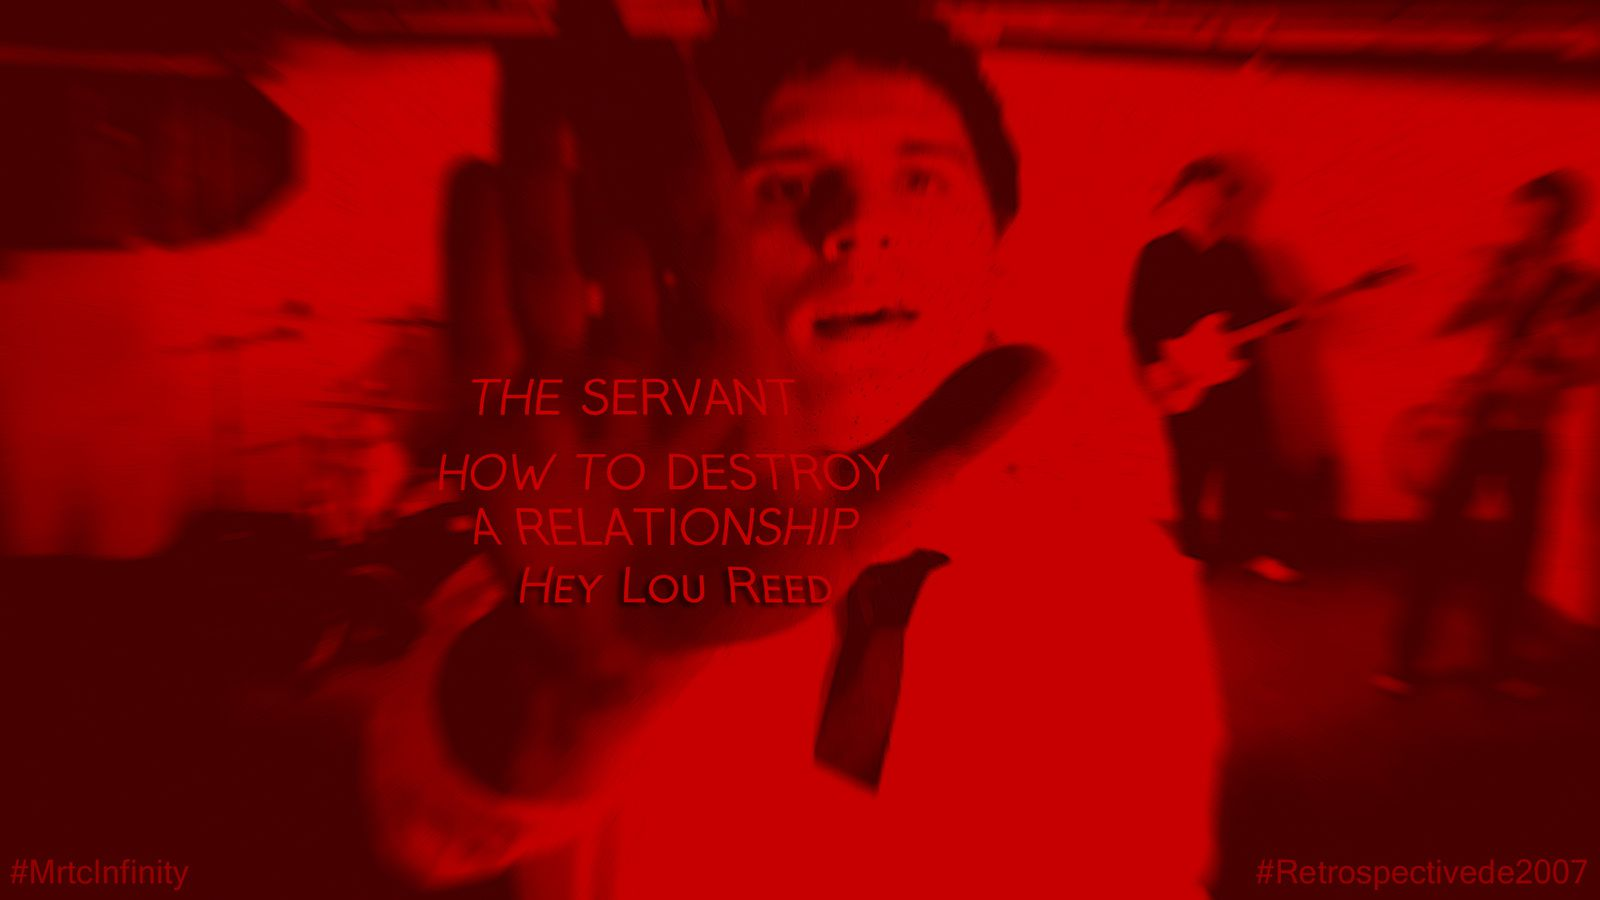 The Servant - Hey Lou Reed